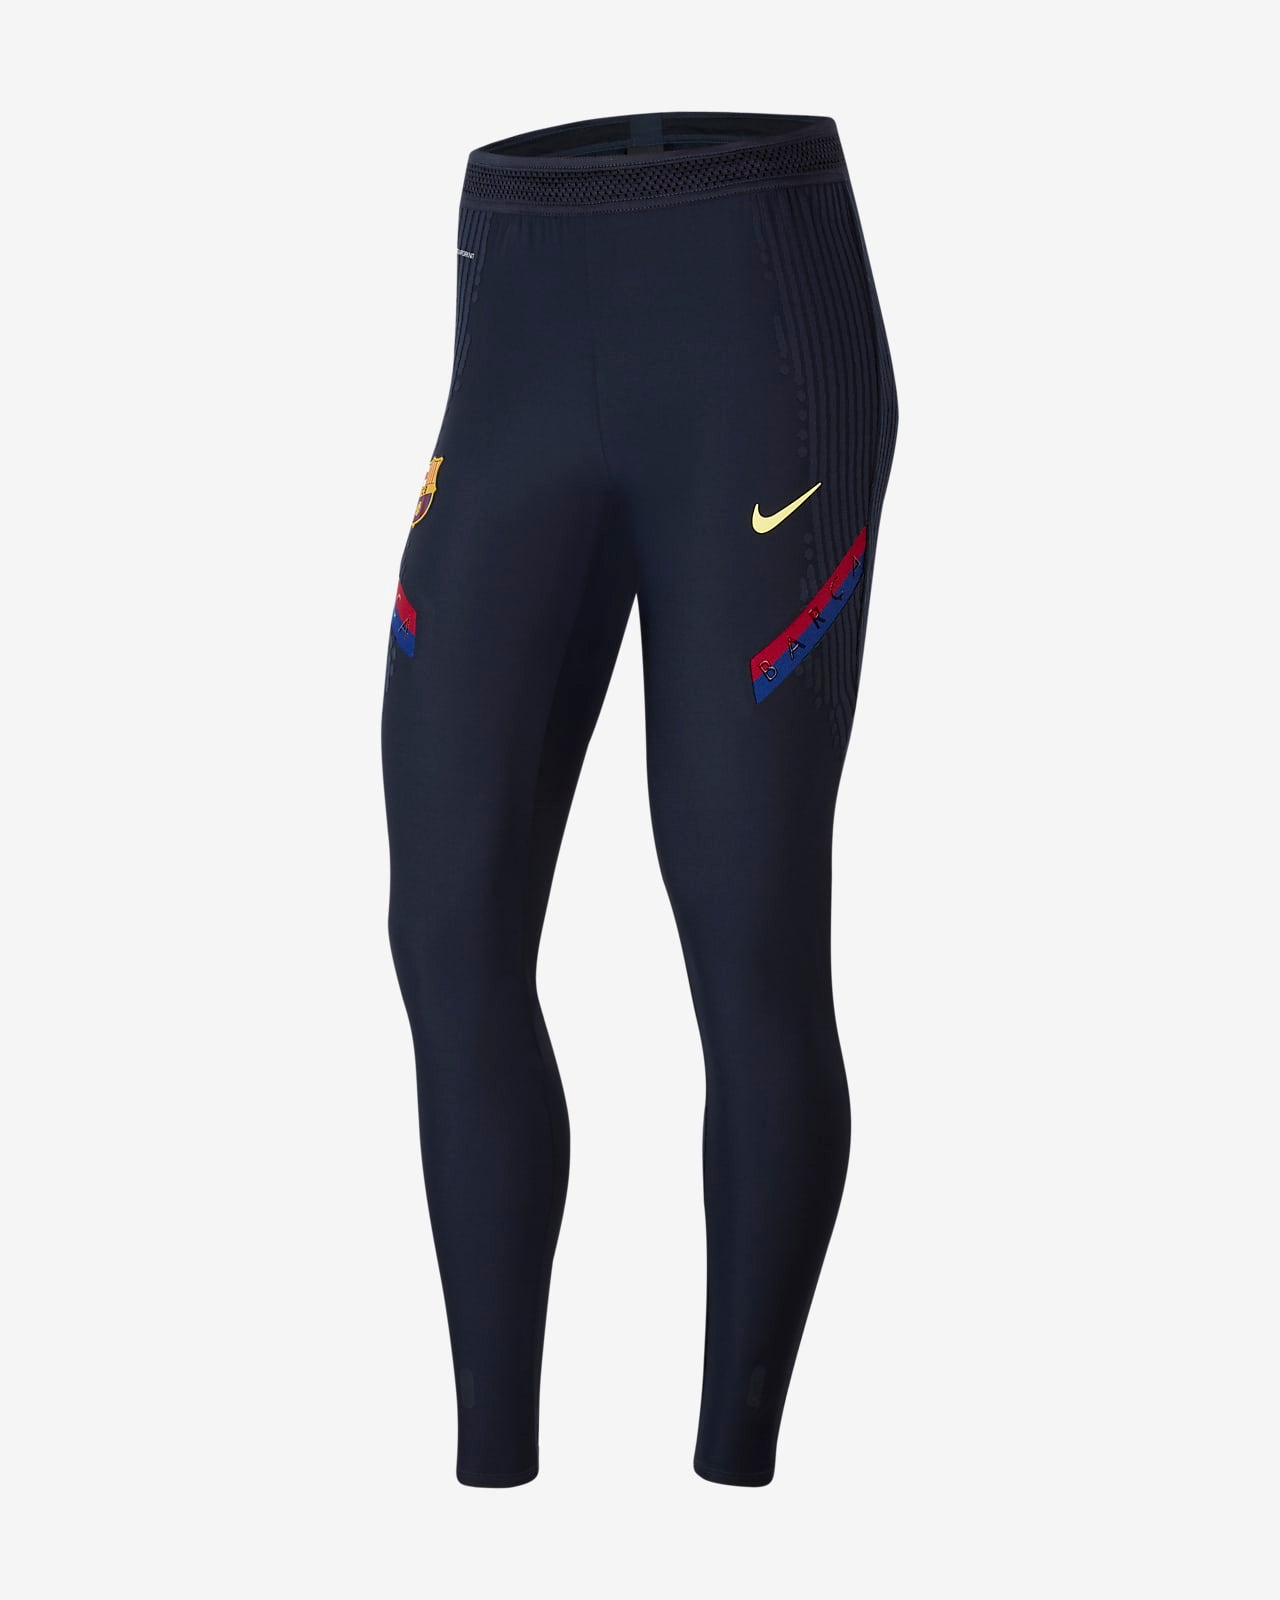 Women's Nike Vaporknit Barcelona Strike Pants.    Size Medium     CU7281-475